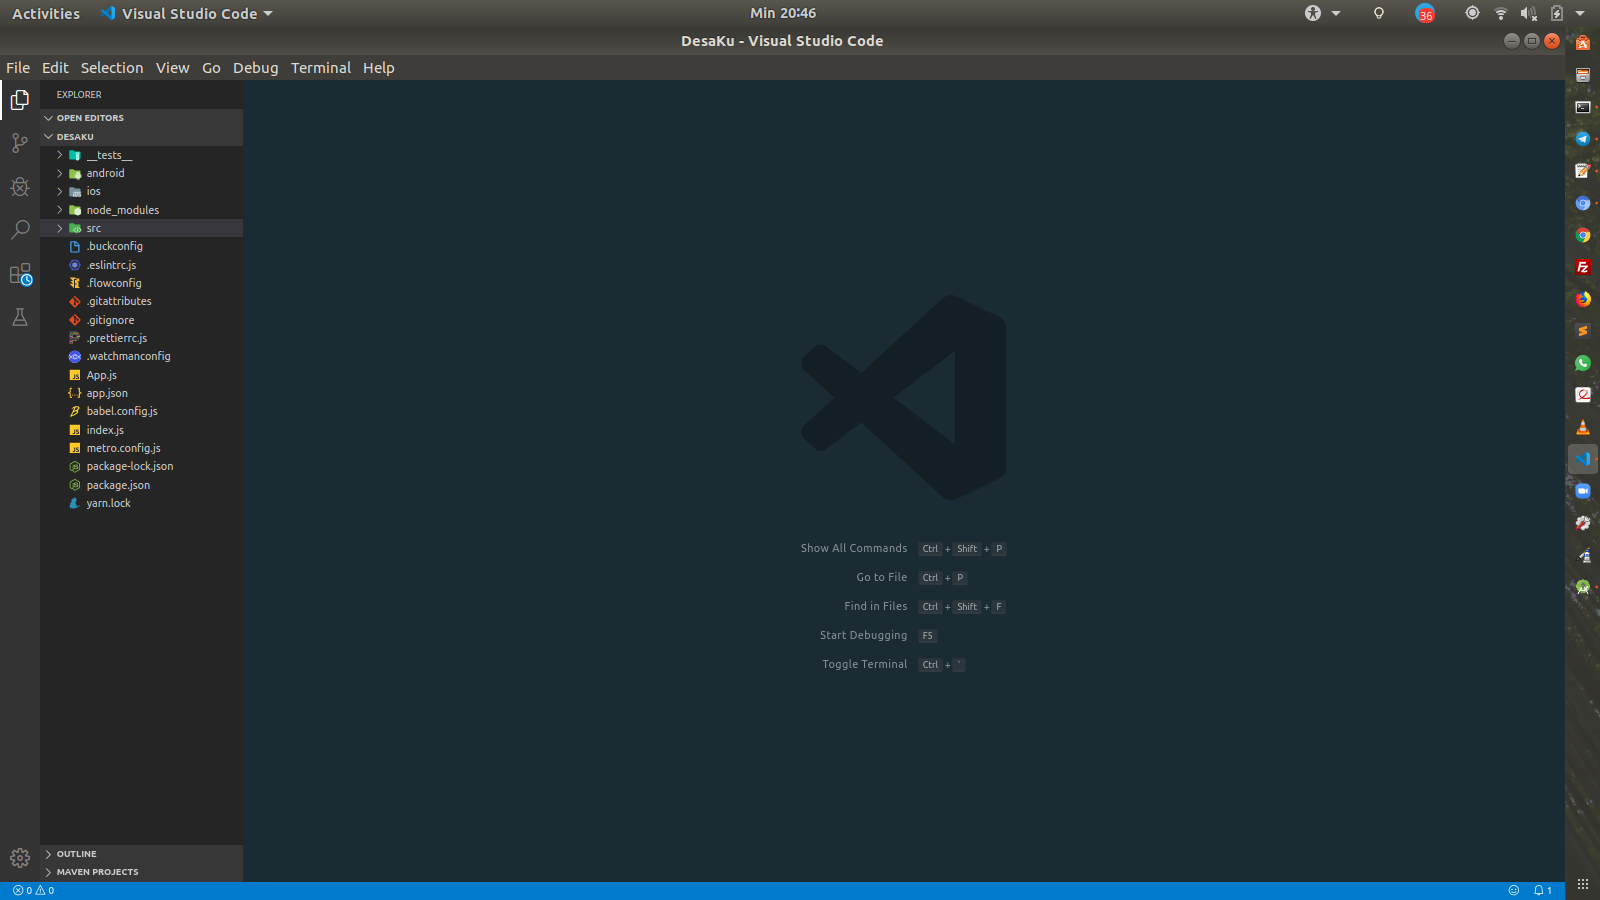 Buka Project Dengan Visual Studio Code